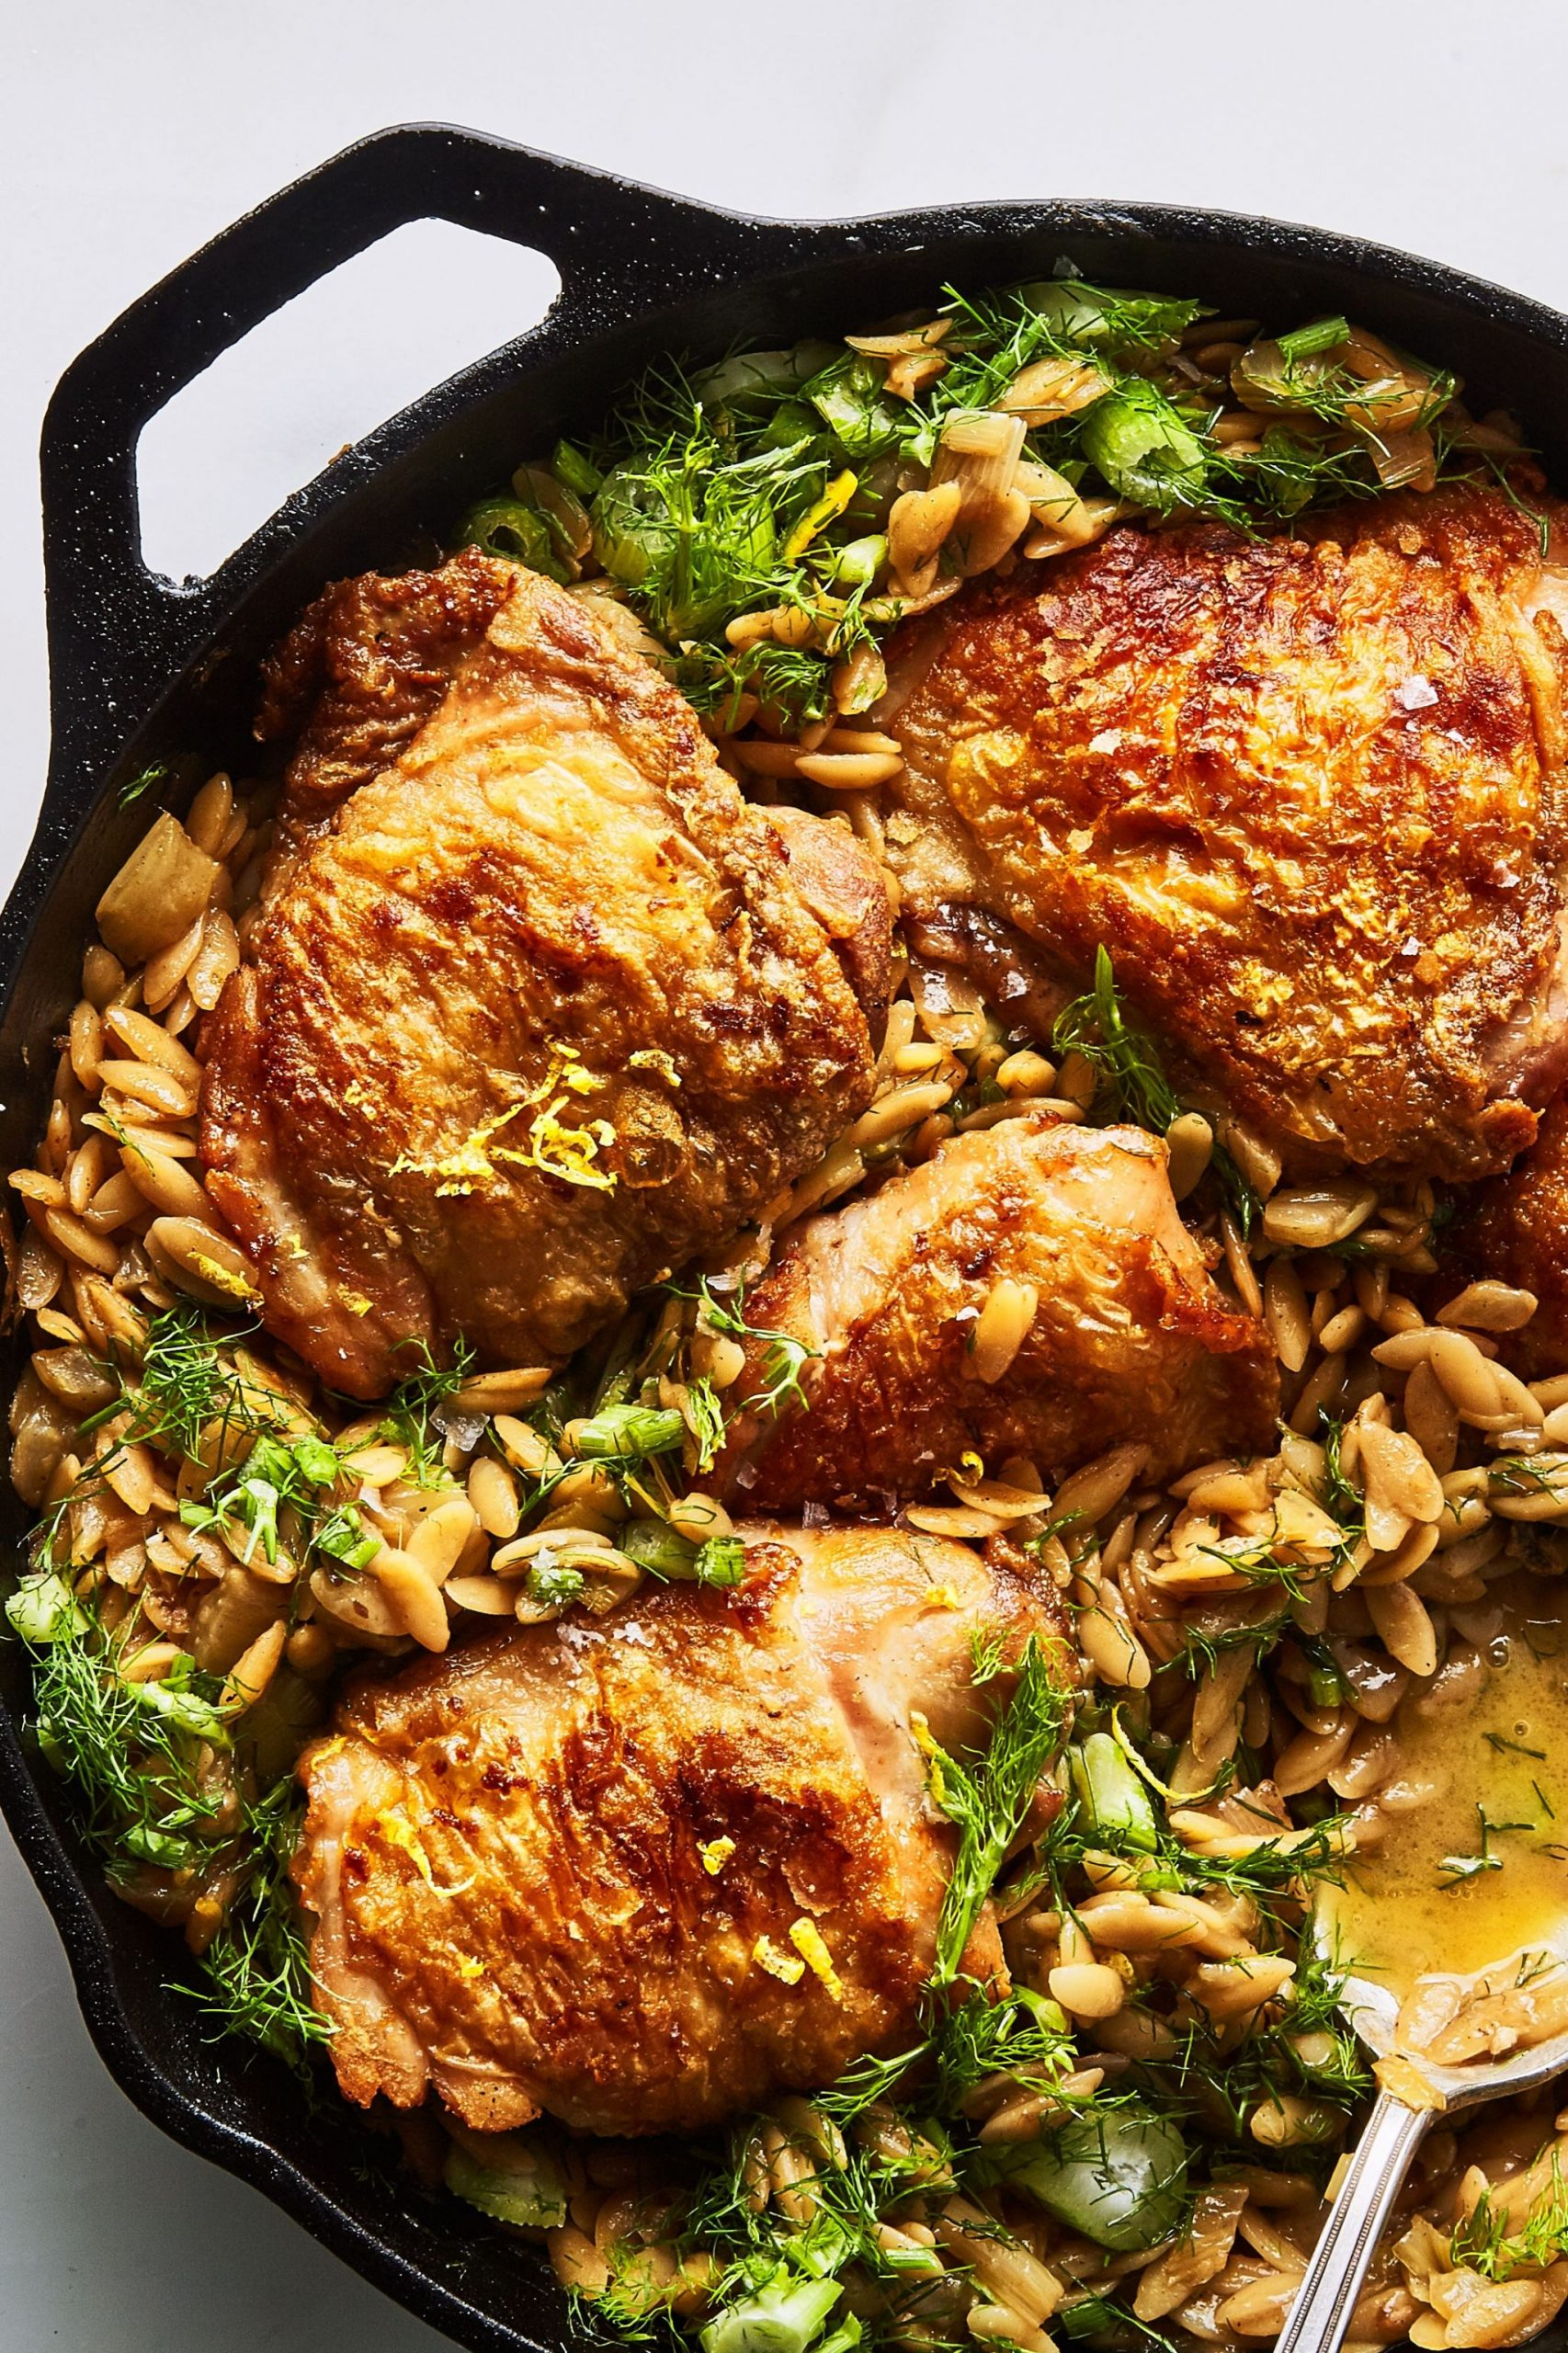 12 Best Chicken Thighs Recipes for Frying, Baking, and More | Bon ..